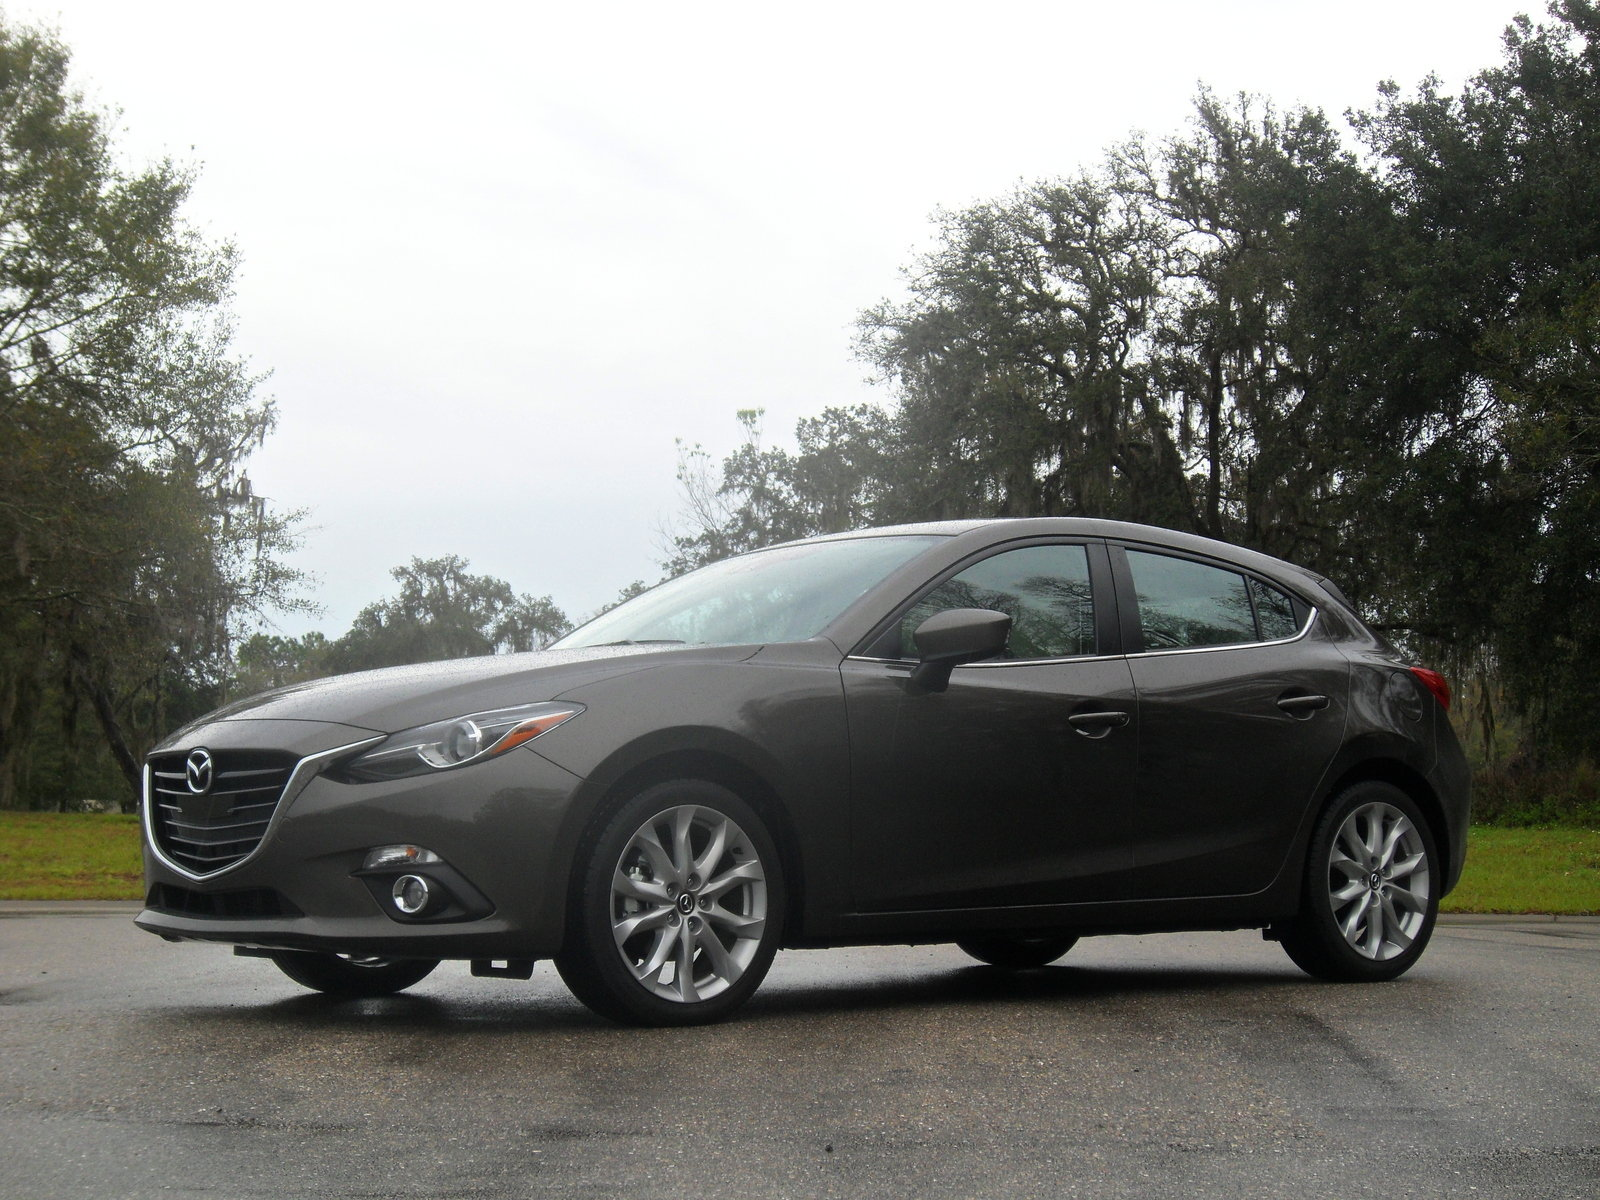 2014 mazda3 s grand touring driven review top speed. Black Bedroom Furniture Sets. Home Design Ideas